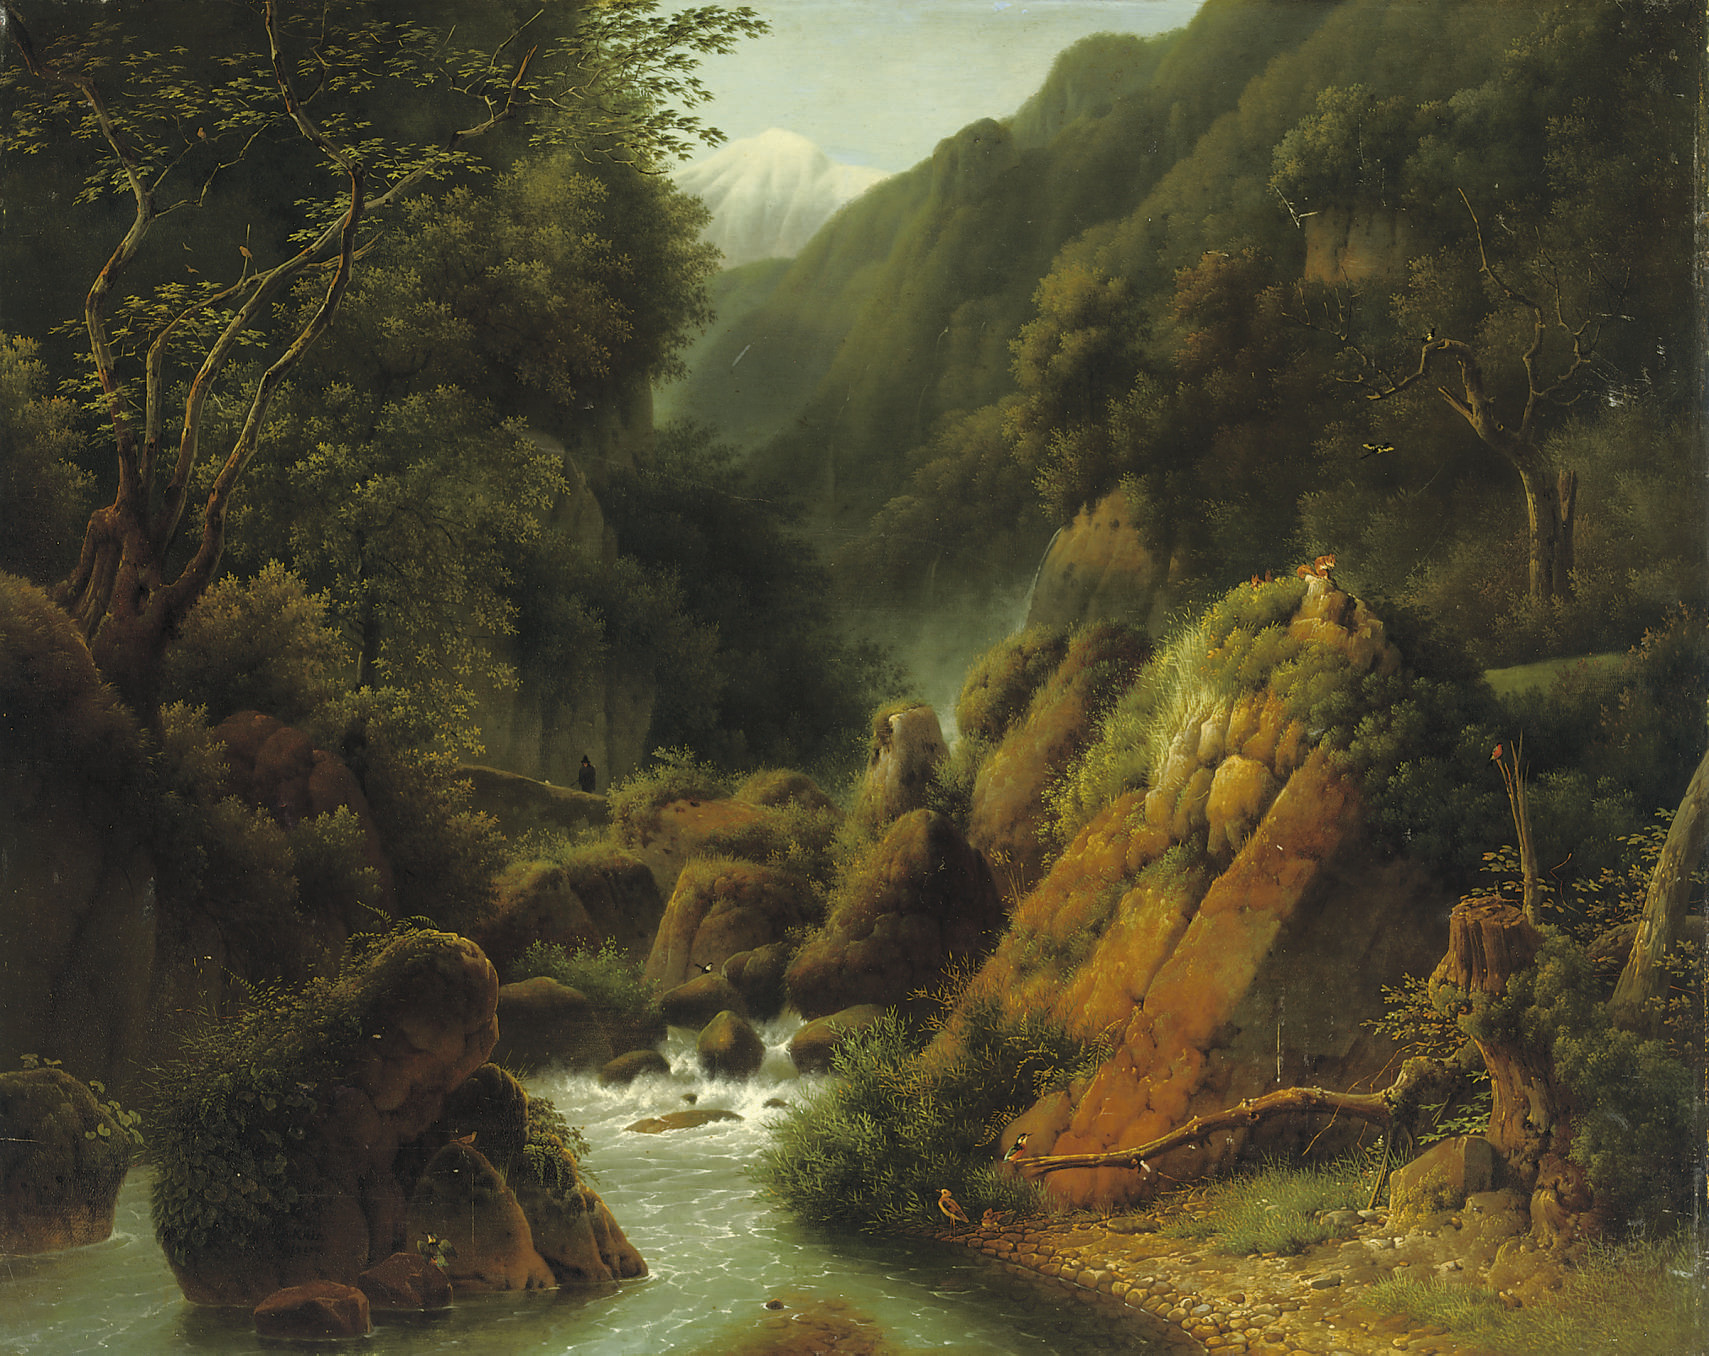 A traveller in a mountain gorge